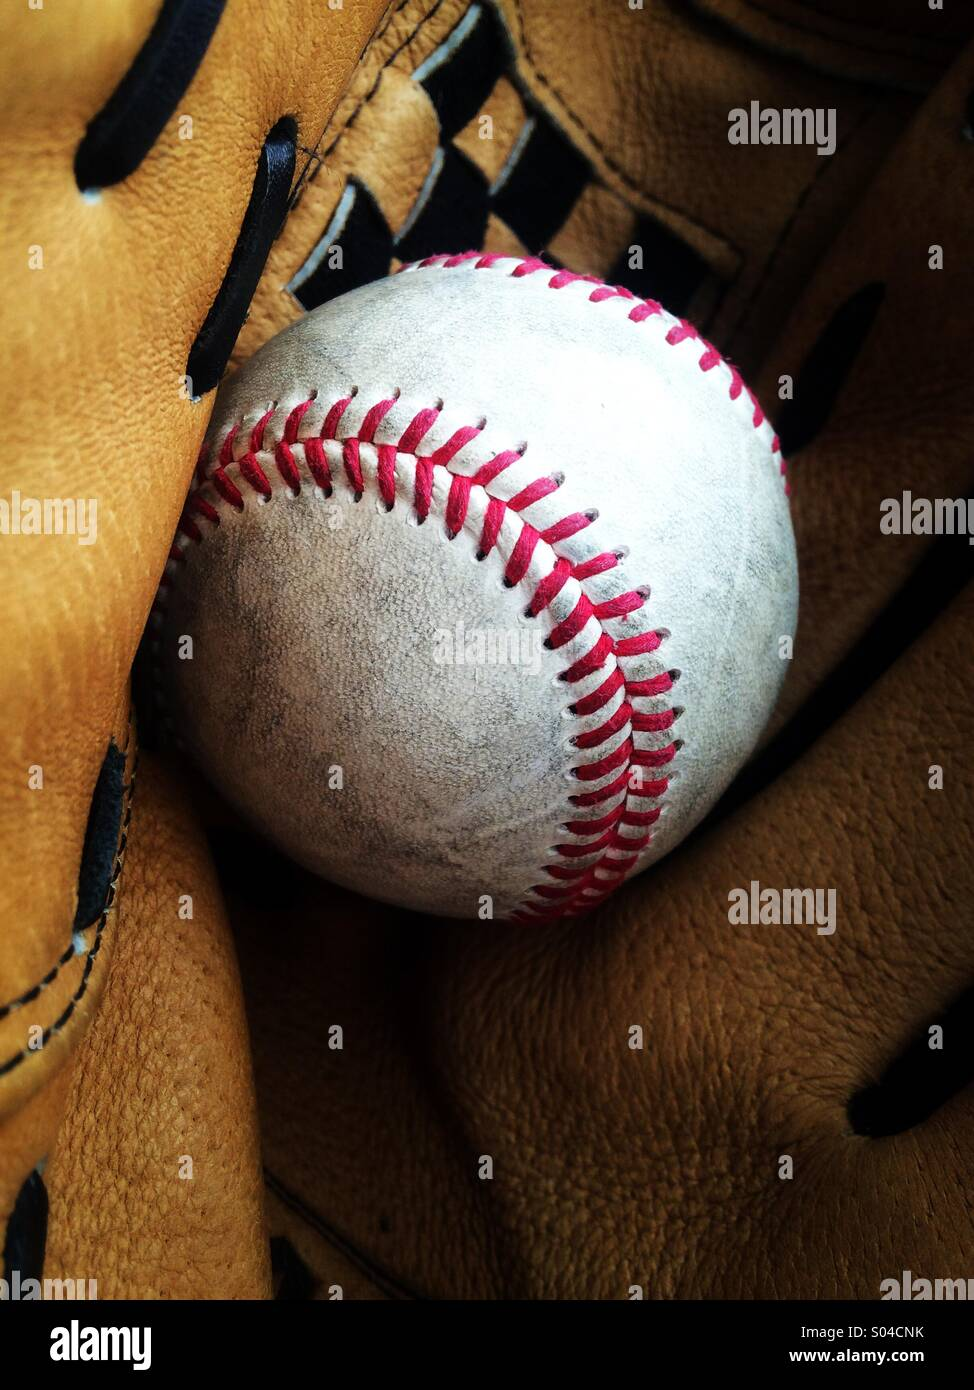 Dans un gant de baseball Photo Stock